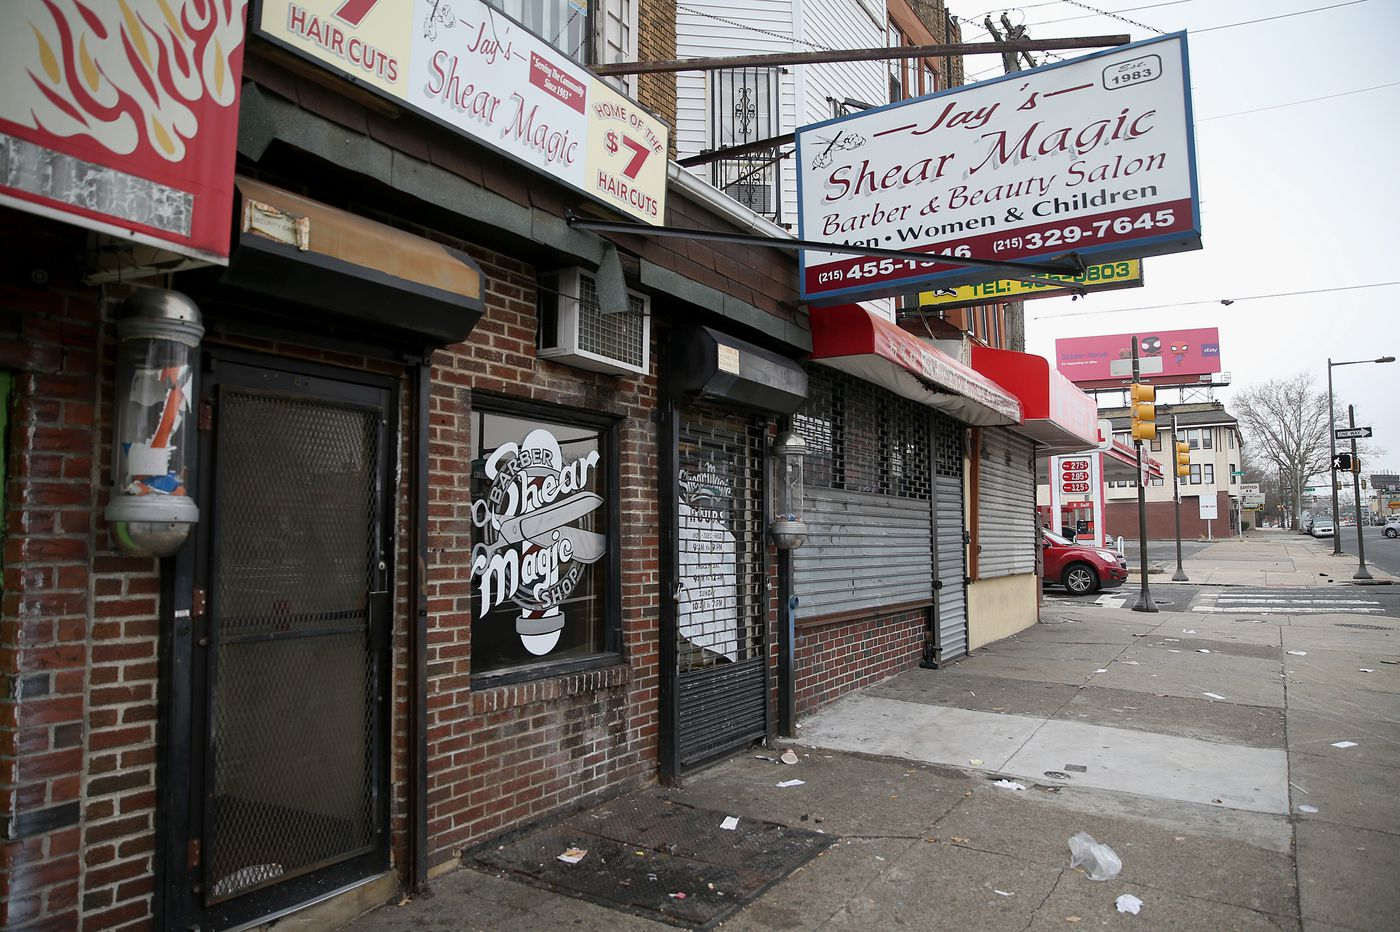 Neighbors shaken by quadruple shooting in North Philly barbershop